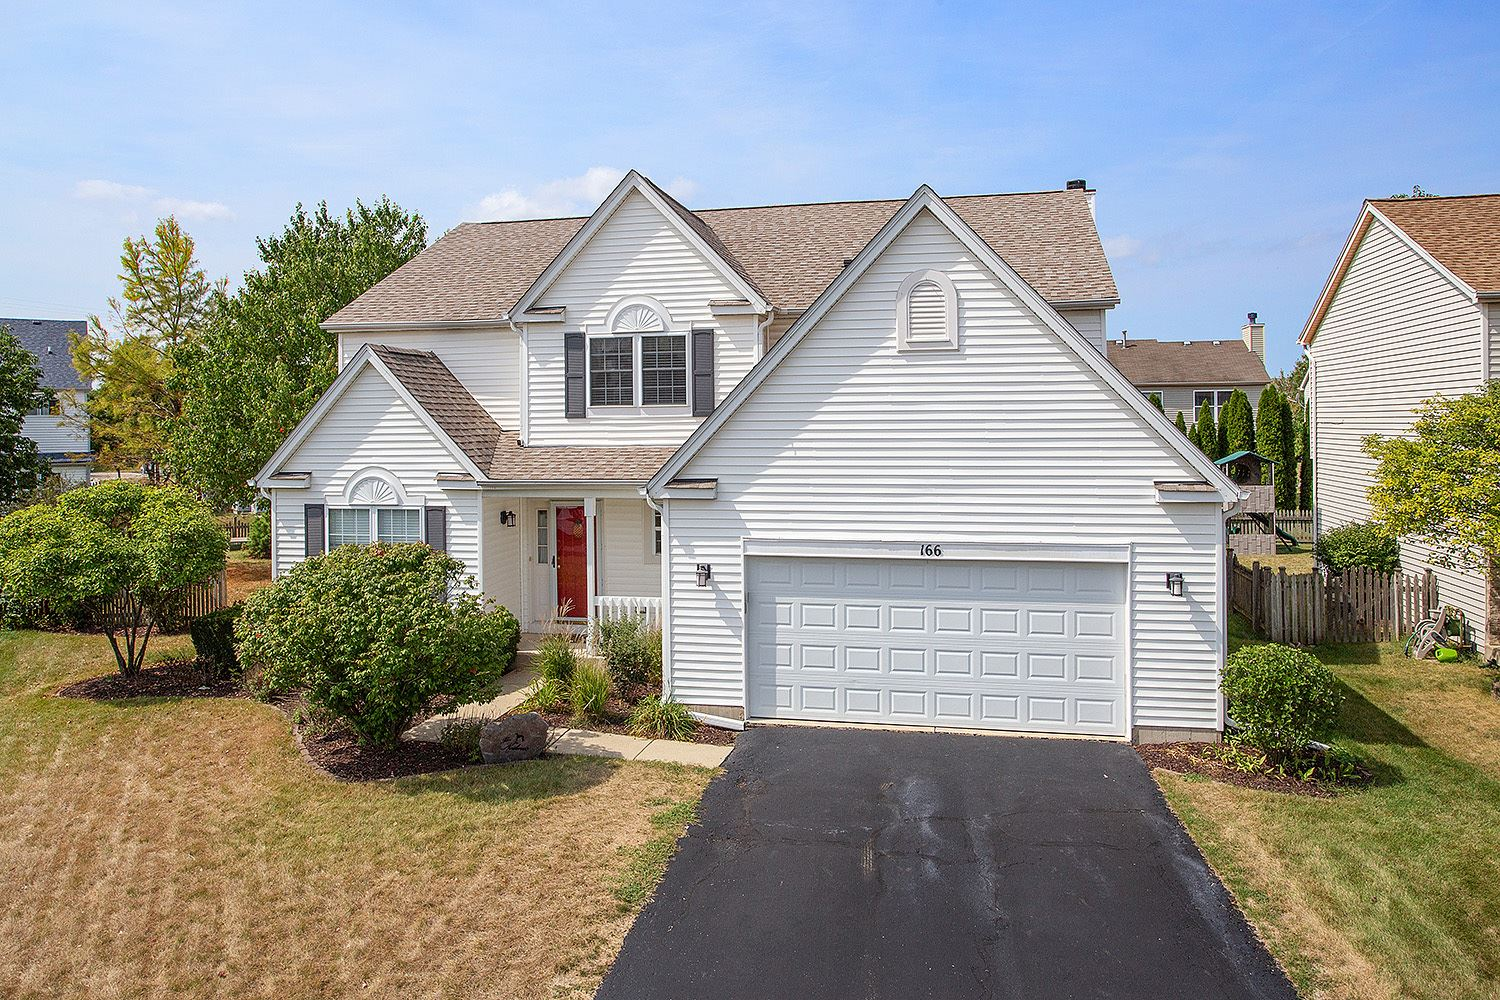 Photo of 166 Spring Hill Court, Romeoville, IL 60446 (MLS # 10852599)